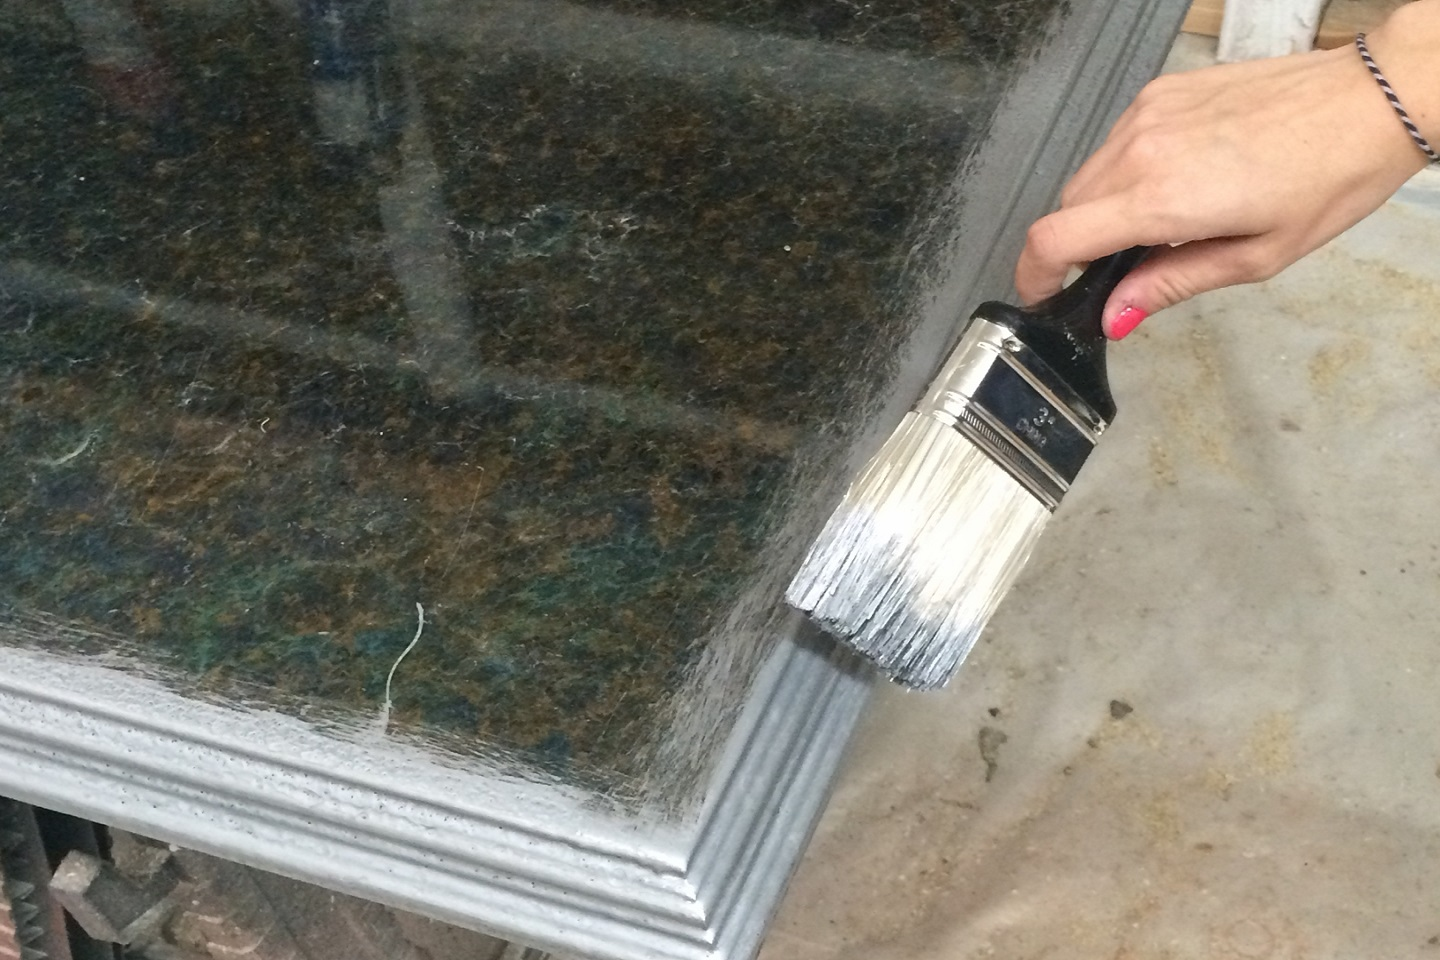 Instructions for mixing FX Poxy and applying to countertops